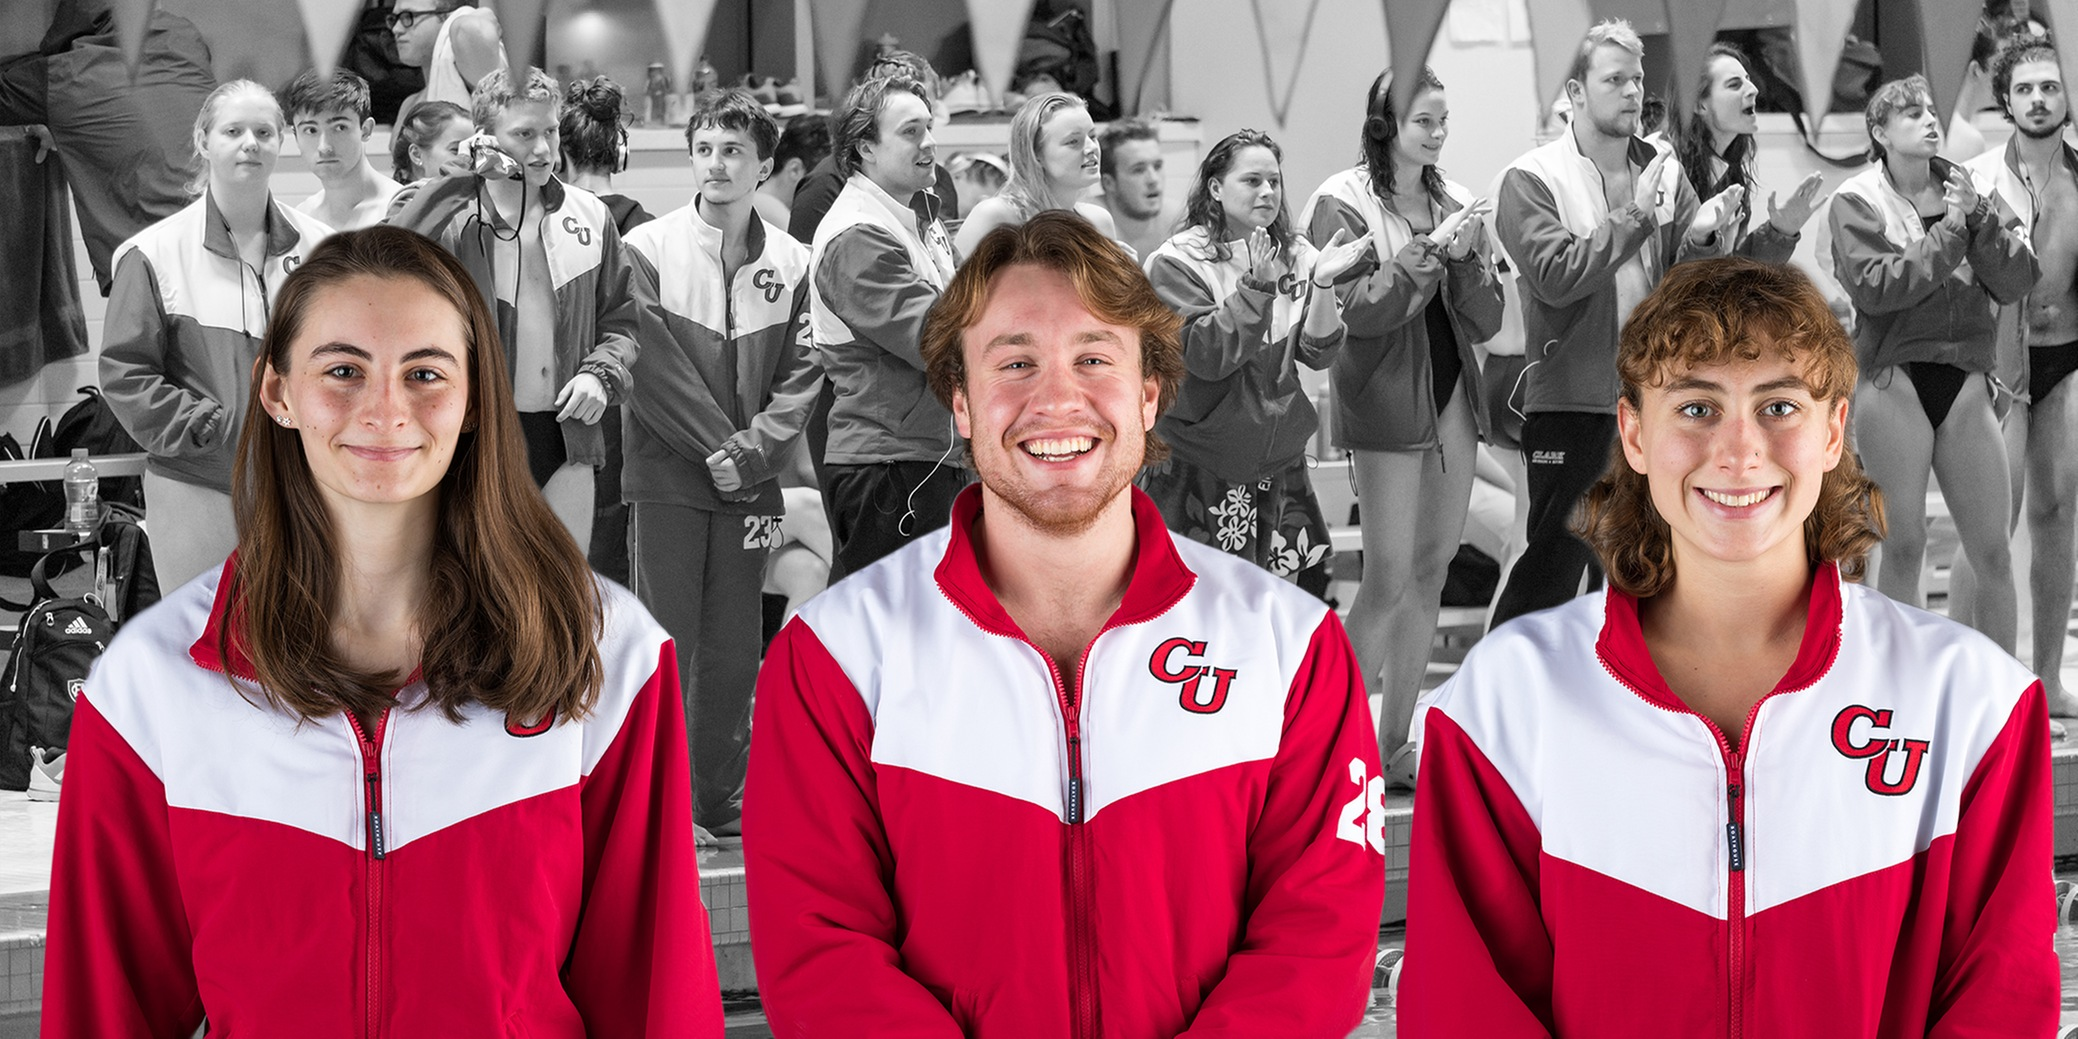 Mitchell, Muratori, and Liscord named 2018-2019 Swimming and Diving Team Captains